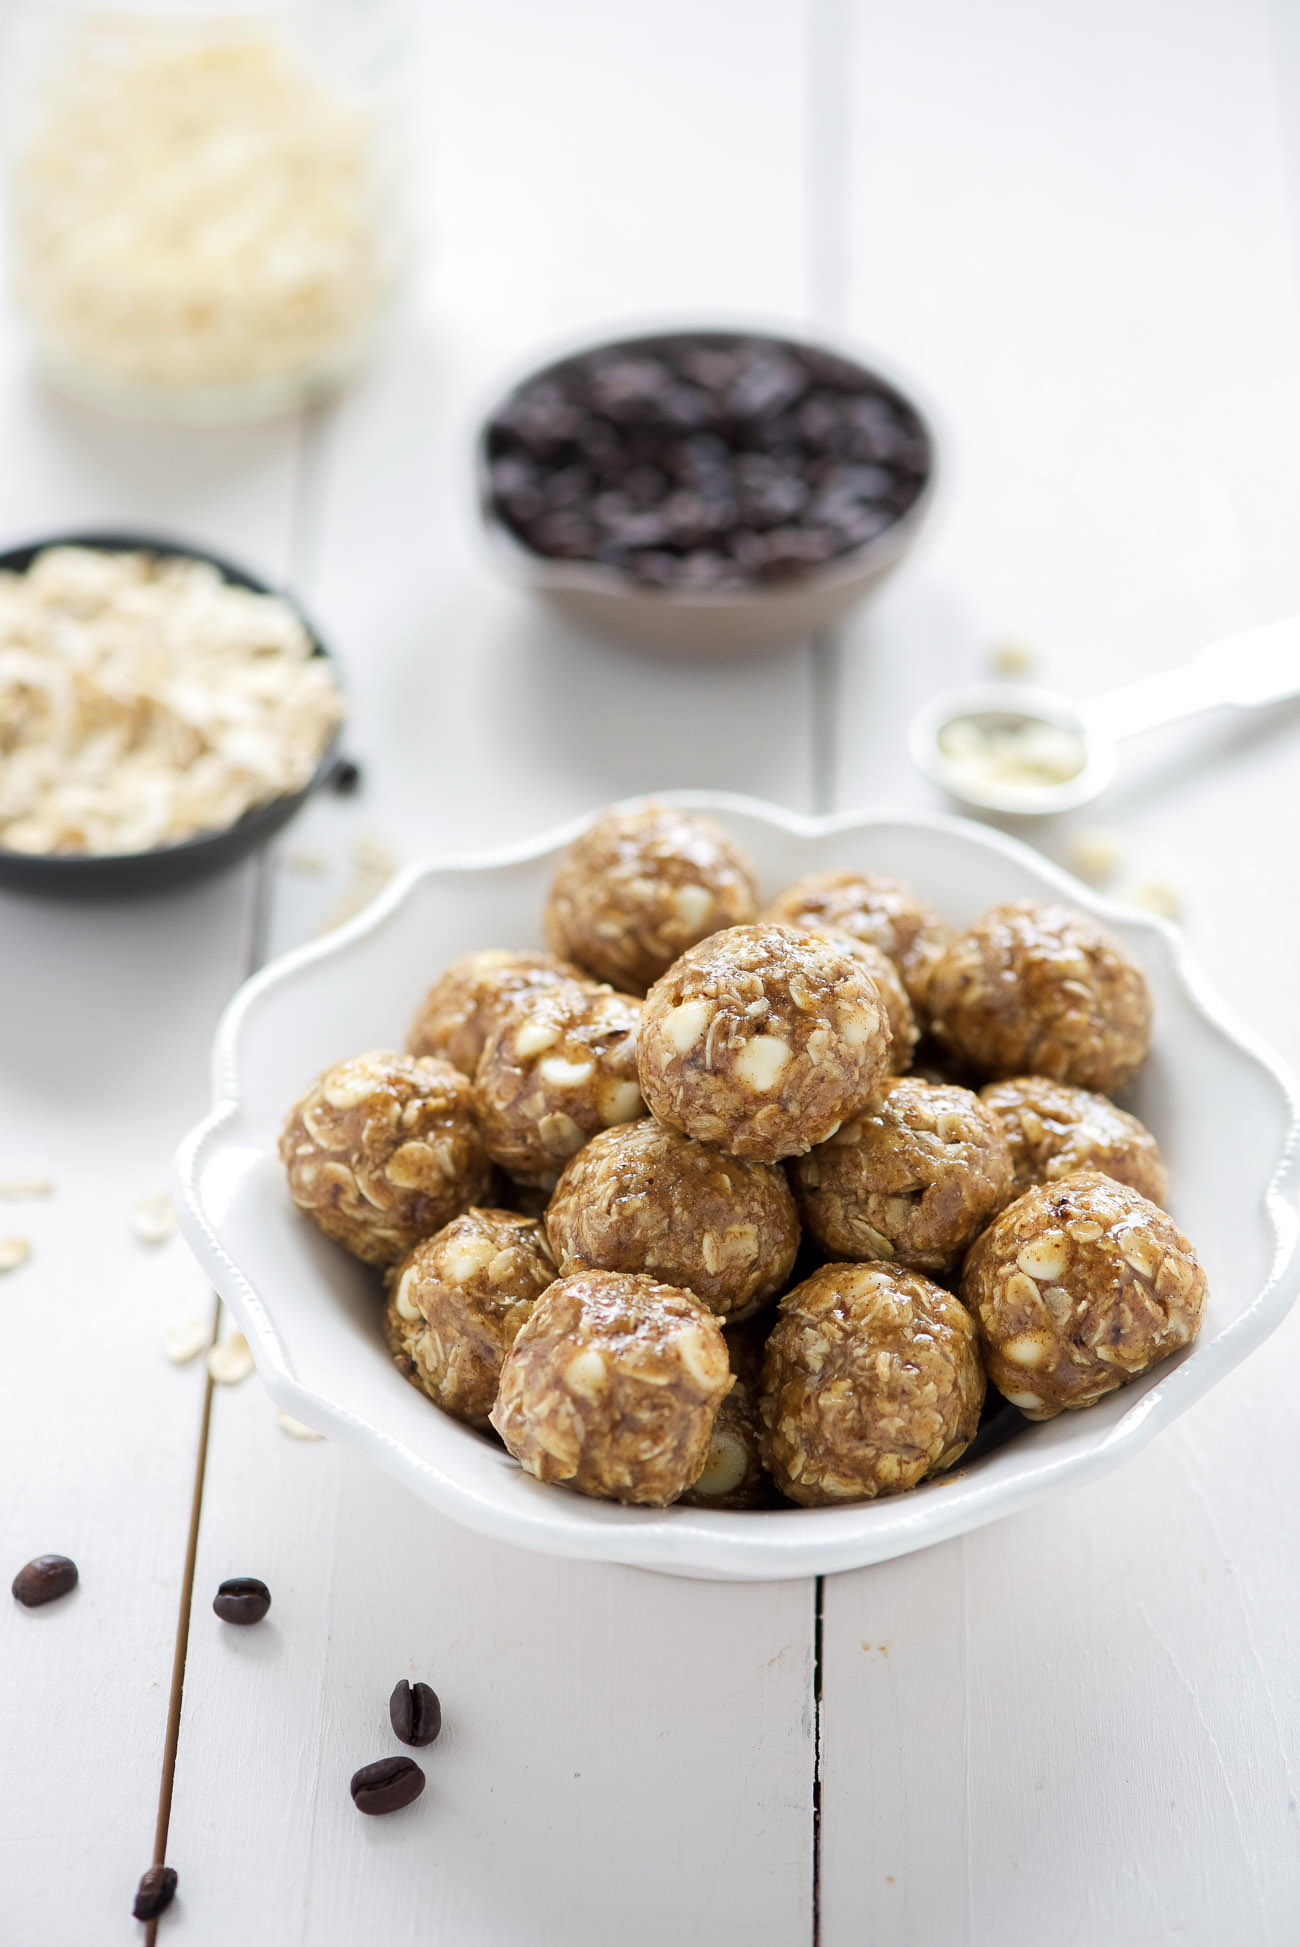 These Vanilla Espresso Almond Butter Energy Bites come in handy when you need more than just a cup of joe in the morning! Filled with hearty oats, almond butter, coffee and white chocolate chips; they are a healthy snack or treat!